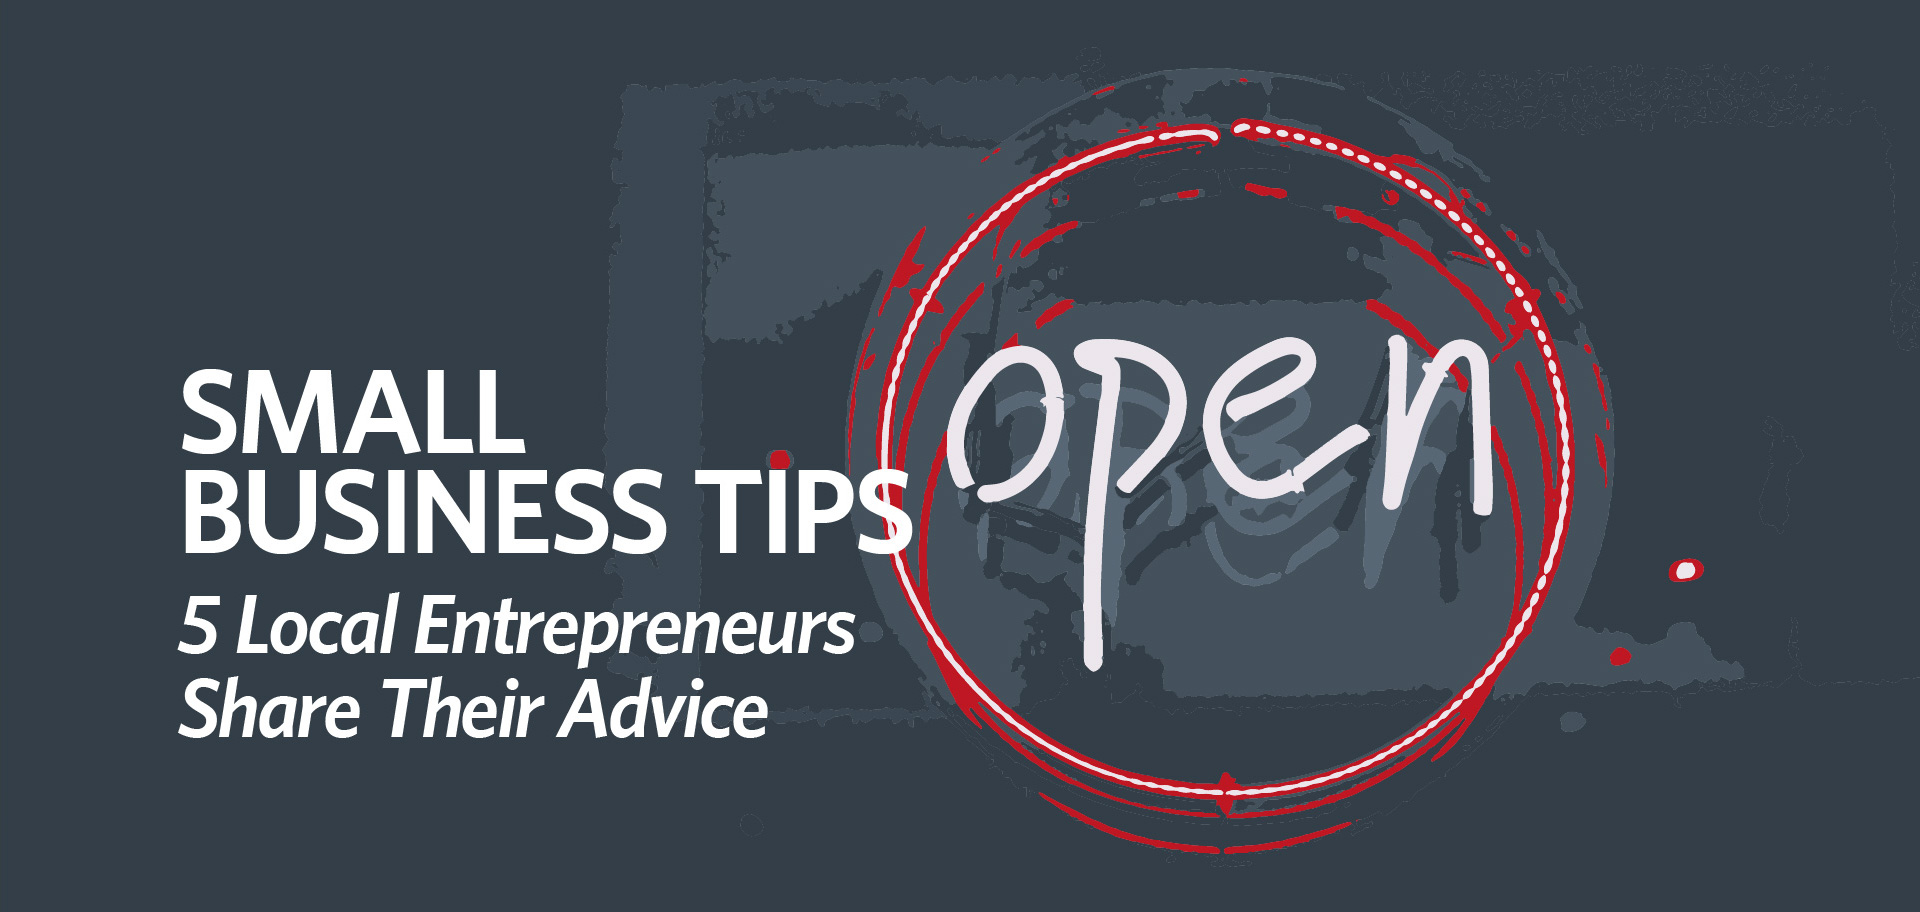 small business Small Business Tips: 5 Local Entrepreneurs Share Their Advice small business tips fi